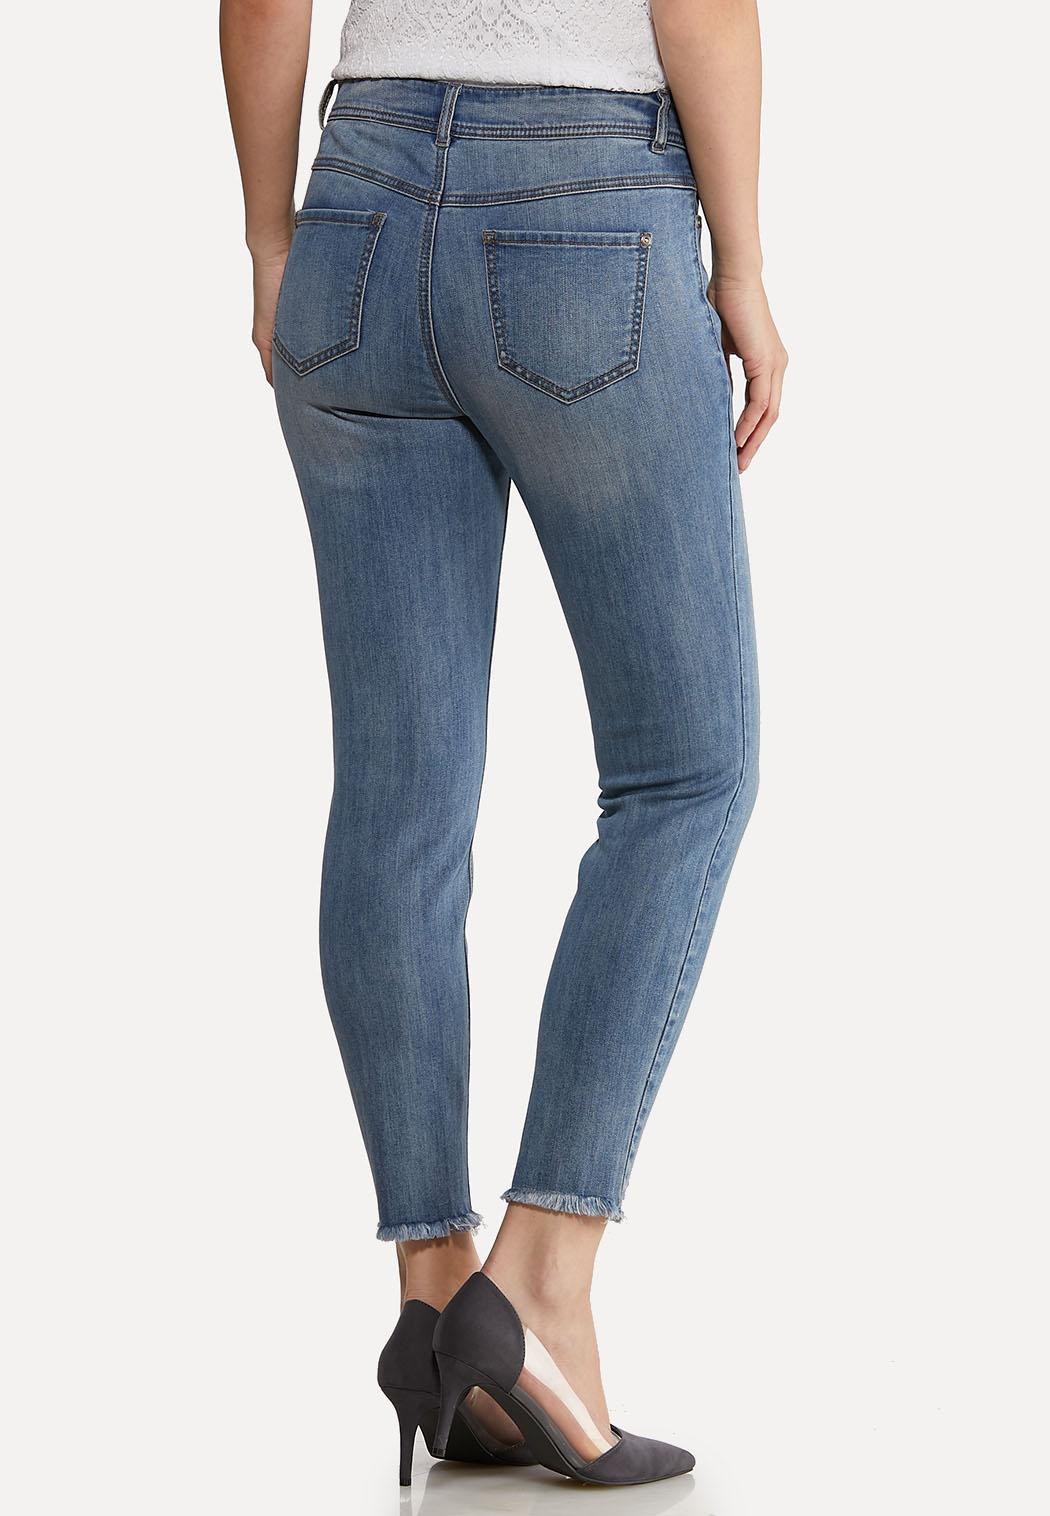 Distressed Ankle Skinny Jeans (Item #44100605)